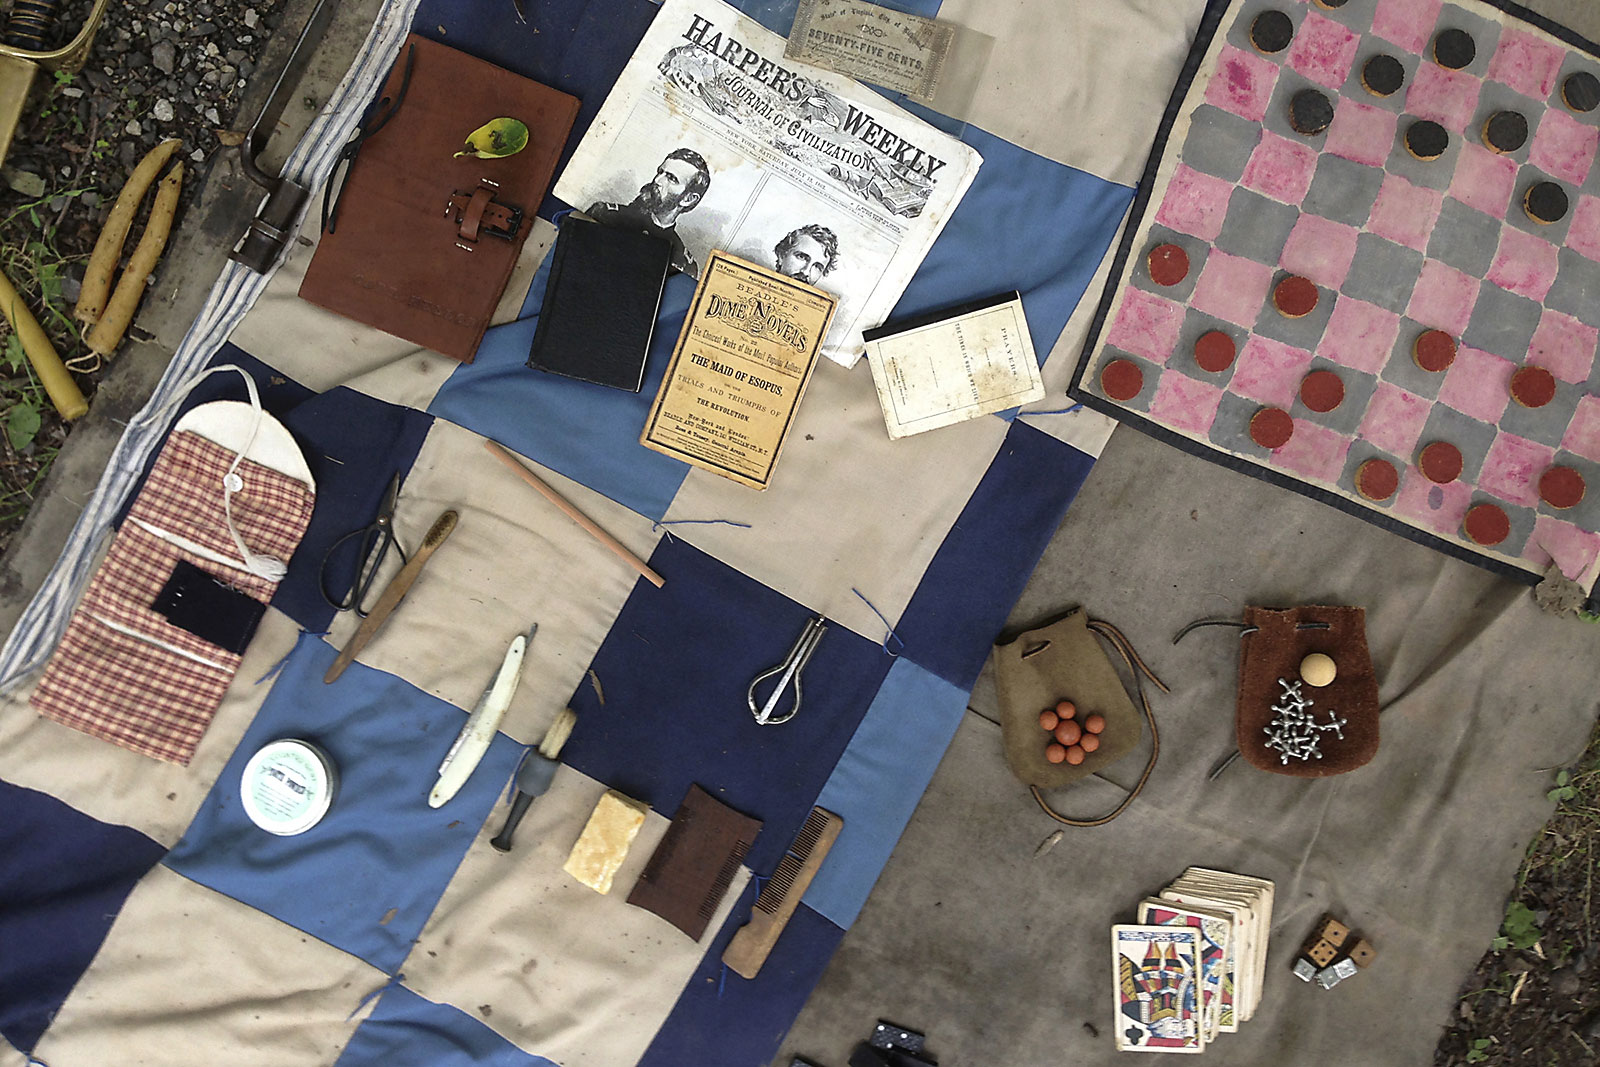 Small articles of humanity such as a pack of playing cards, a journal or photos from home would have been the few personal items a Civil War era soldier would have carried throughout the war.